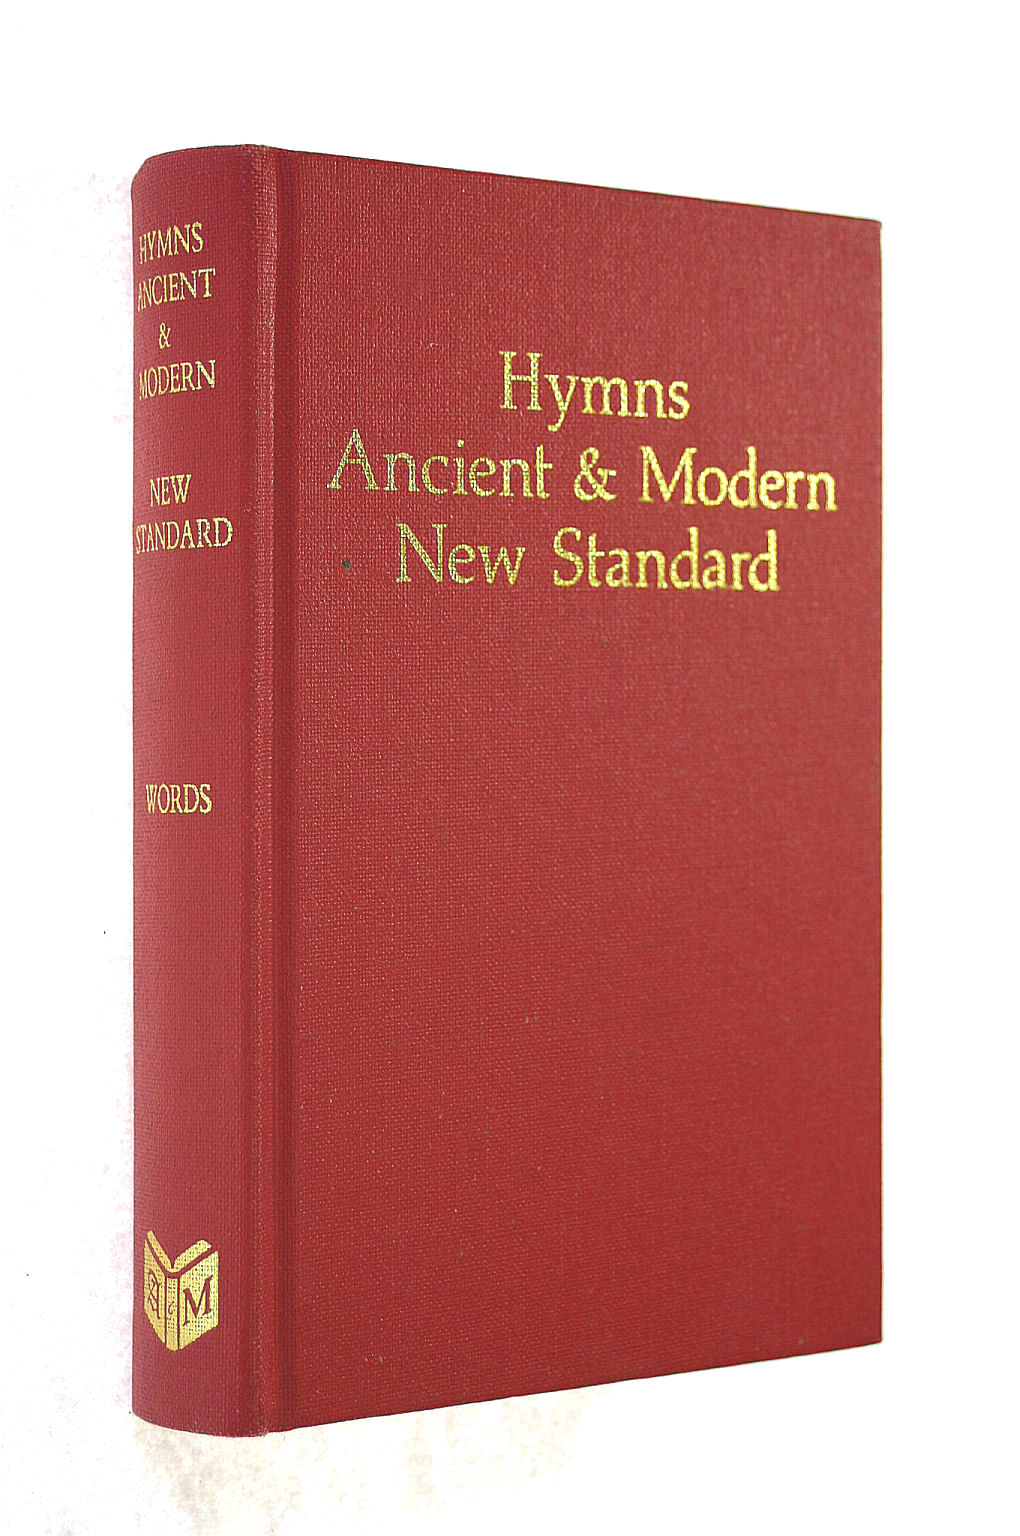 Image for Hymns Ancient and Modern: New Standard Version Words edition (New Standard Edition)